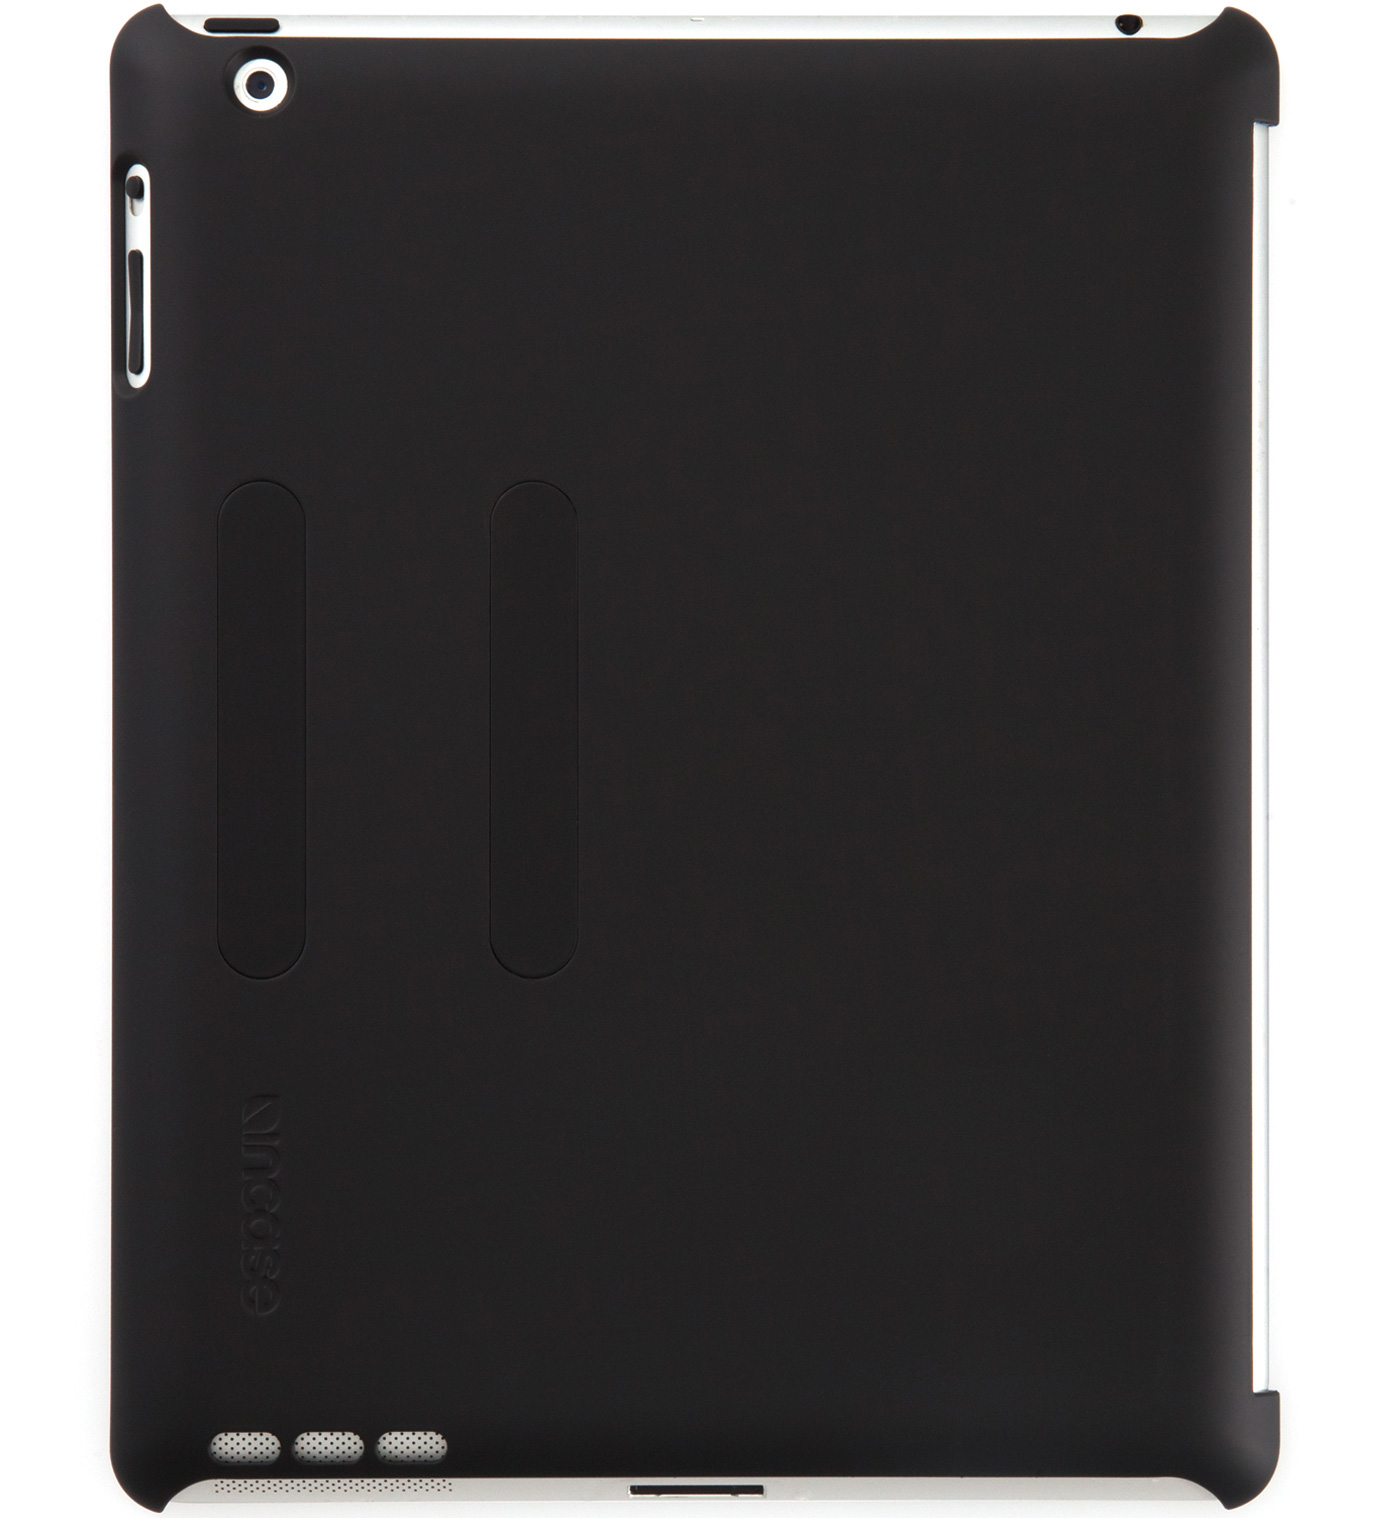 Incase Magnetic Snap Case for iPad 3